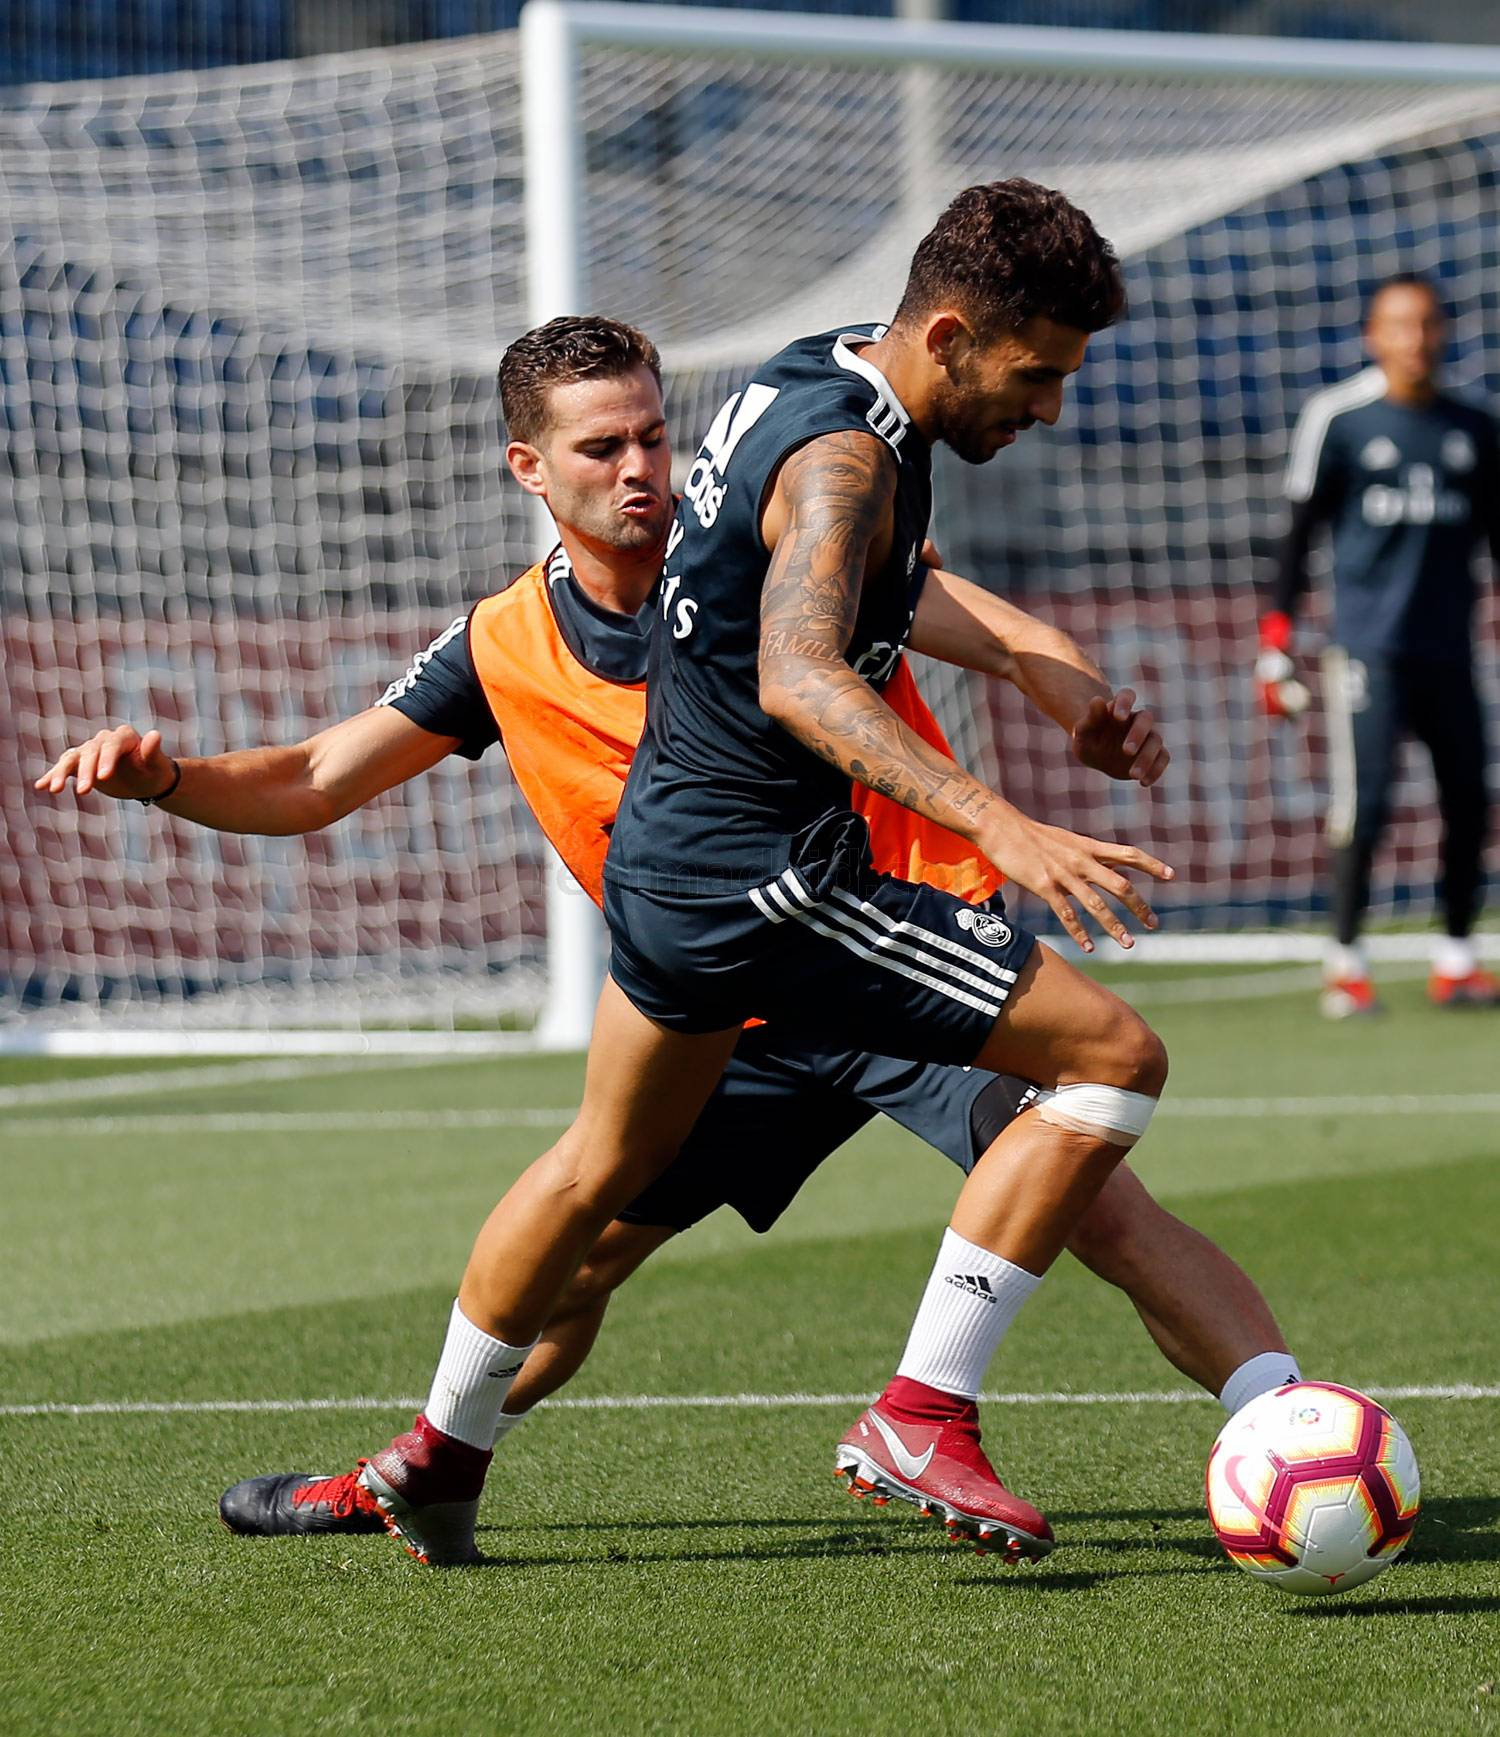 Real Madrid - Entrenamiento del Real Madrid - 31-08-2018